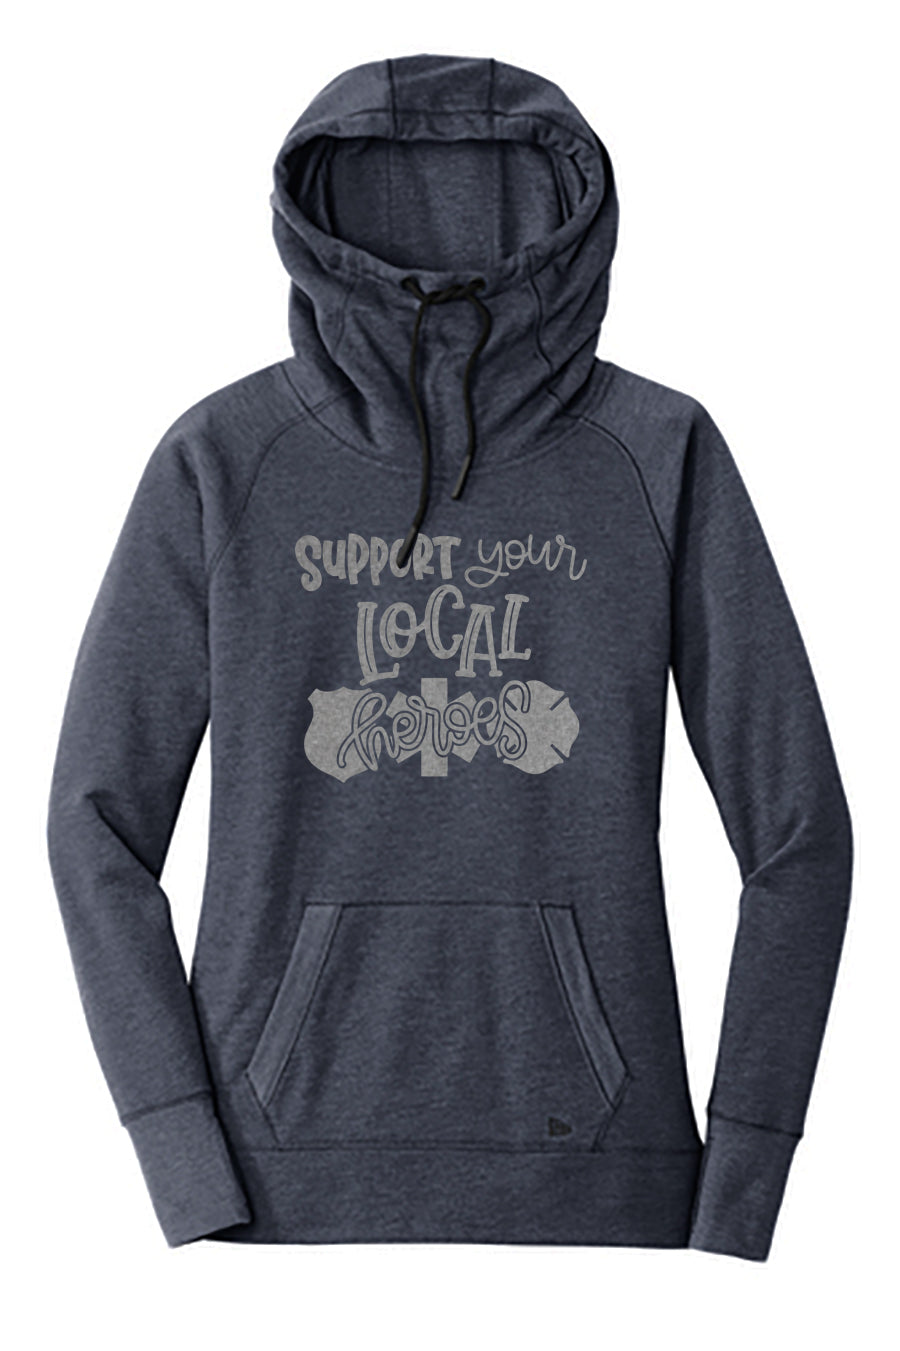 The ORIGINAL Support Your Local Heroes© Cowl Neck Fleece Hoodie (Navy Heather + Silver)